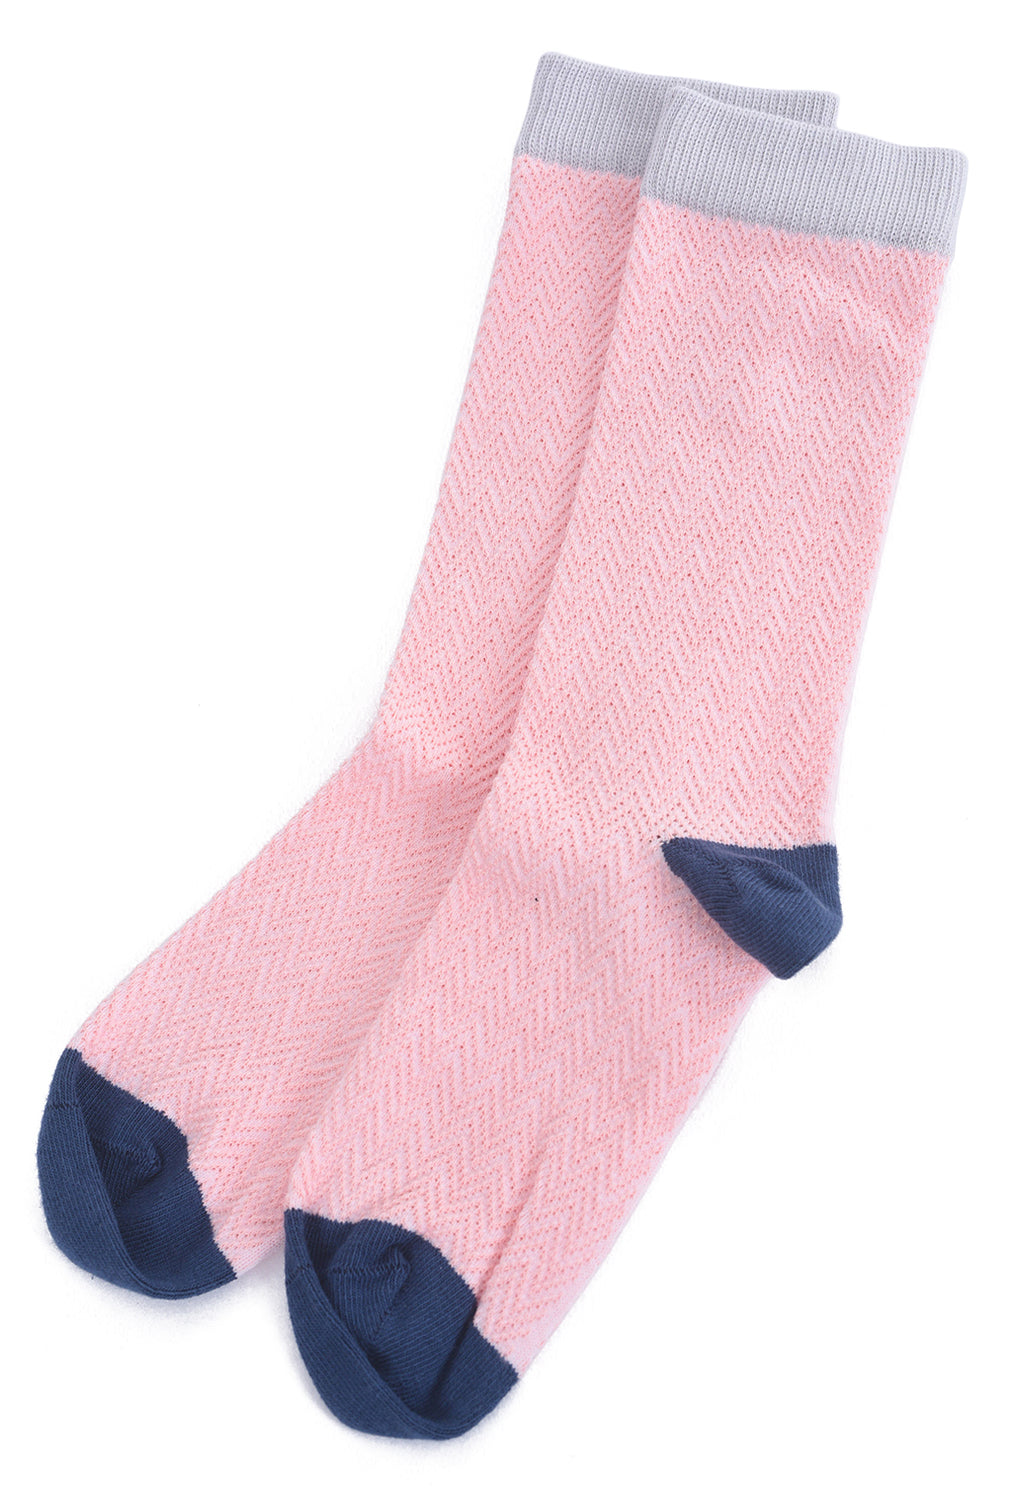 Little River Sock Mill Textured Herringbone Sock, Blossom Pink One Size Pink